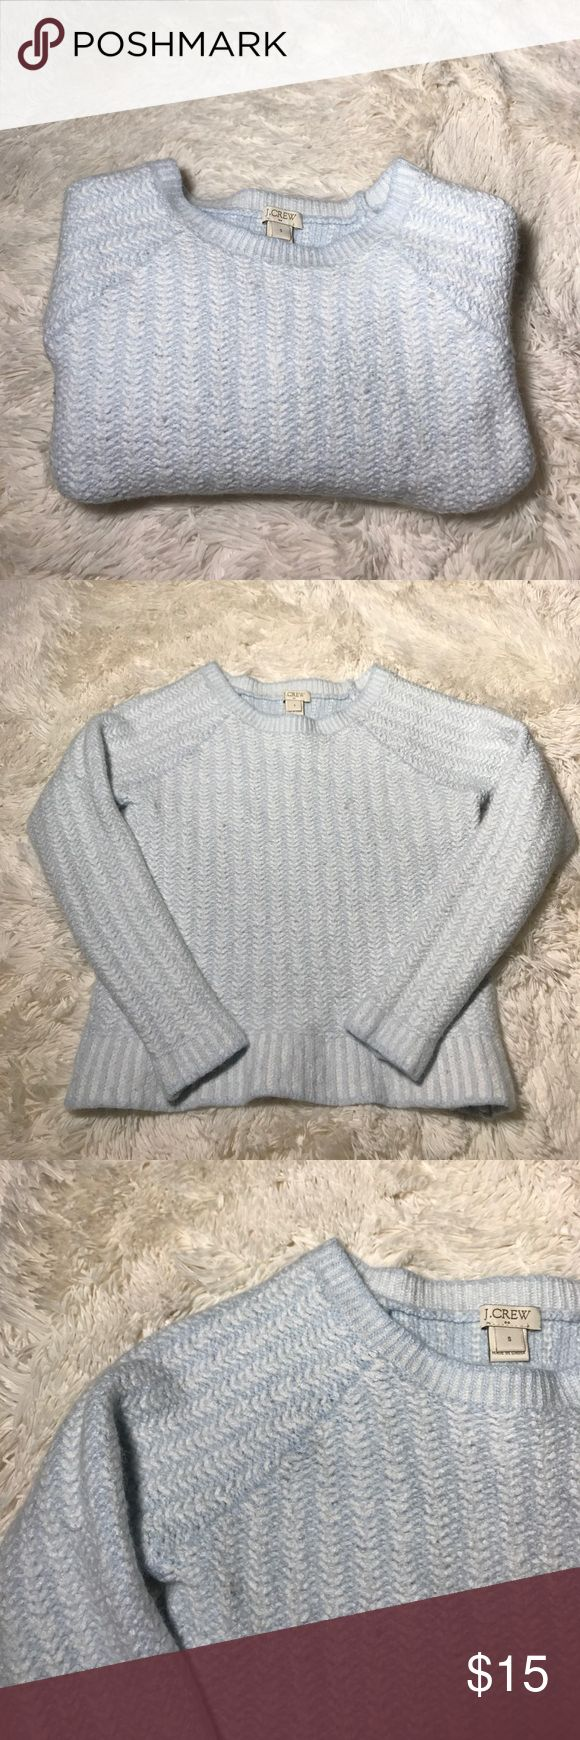 "•J. Crew• Wool Blend Girls Sweater Size Small. There is a hole underneath the arm, that may be able to be fixed? Please see photos. Pretty baby blue color. Assuming this is girls, but I suppose it could be boys?  Bust: 27"" Length: 17"" Sleeve Length: 20"" Shoulder to Shoulder: 8"" J. Crew Shirts & Tops Sweaters"